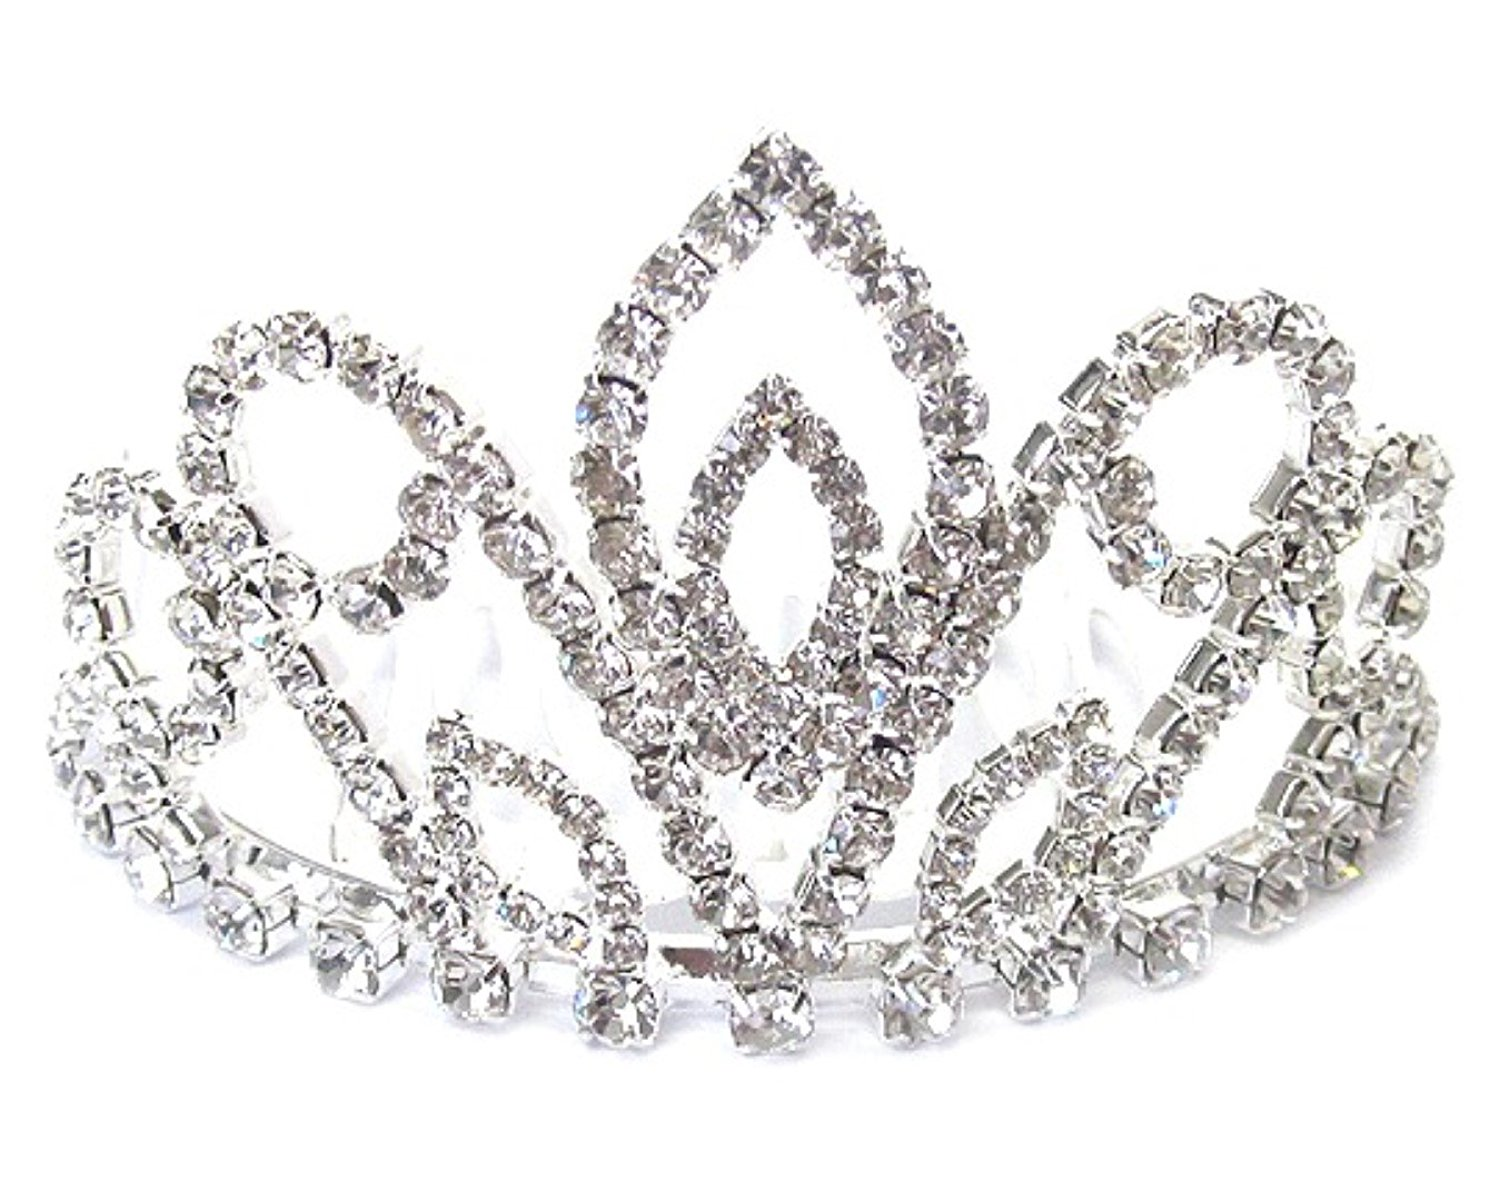 Cheap girl flower crown find girl flower crown deals on line at get quotations clear crystal tiara crown small bun sized silver tone bridal flower girl doll izmirmasajfo Image collections